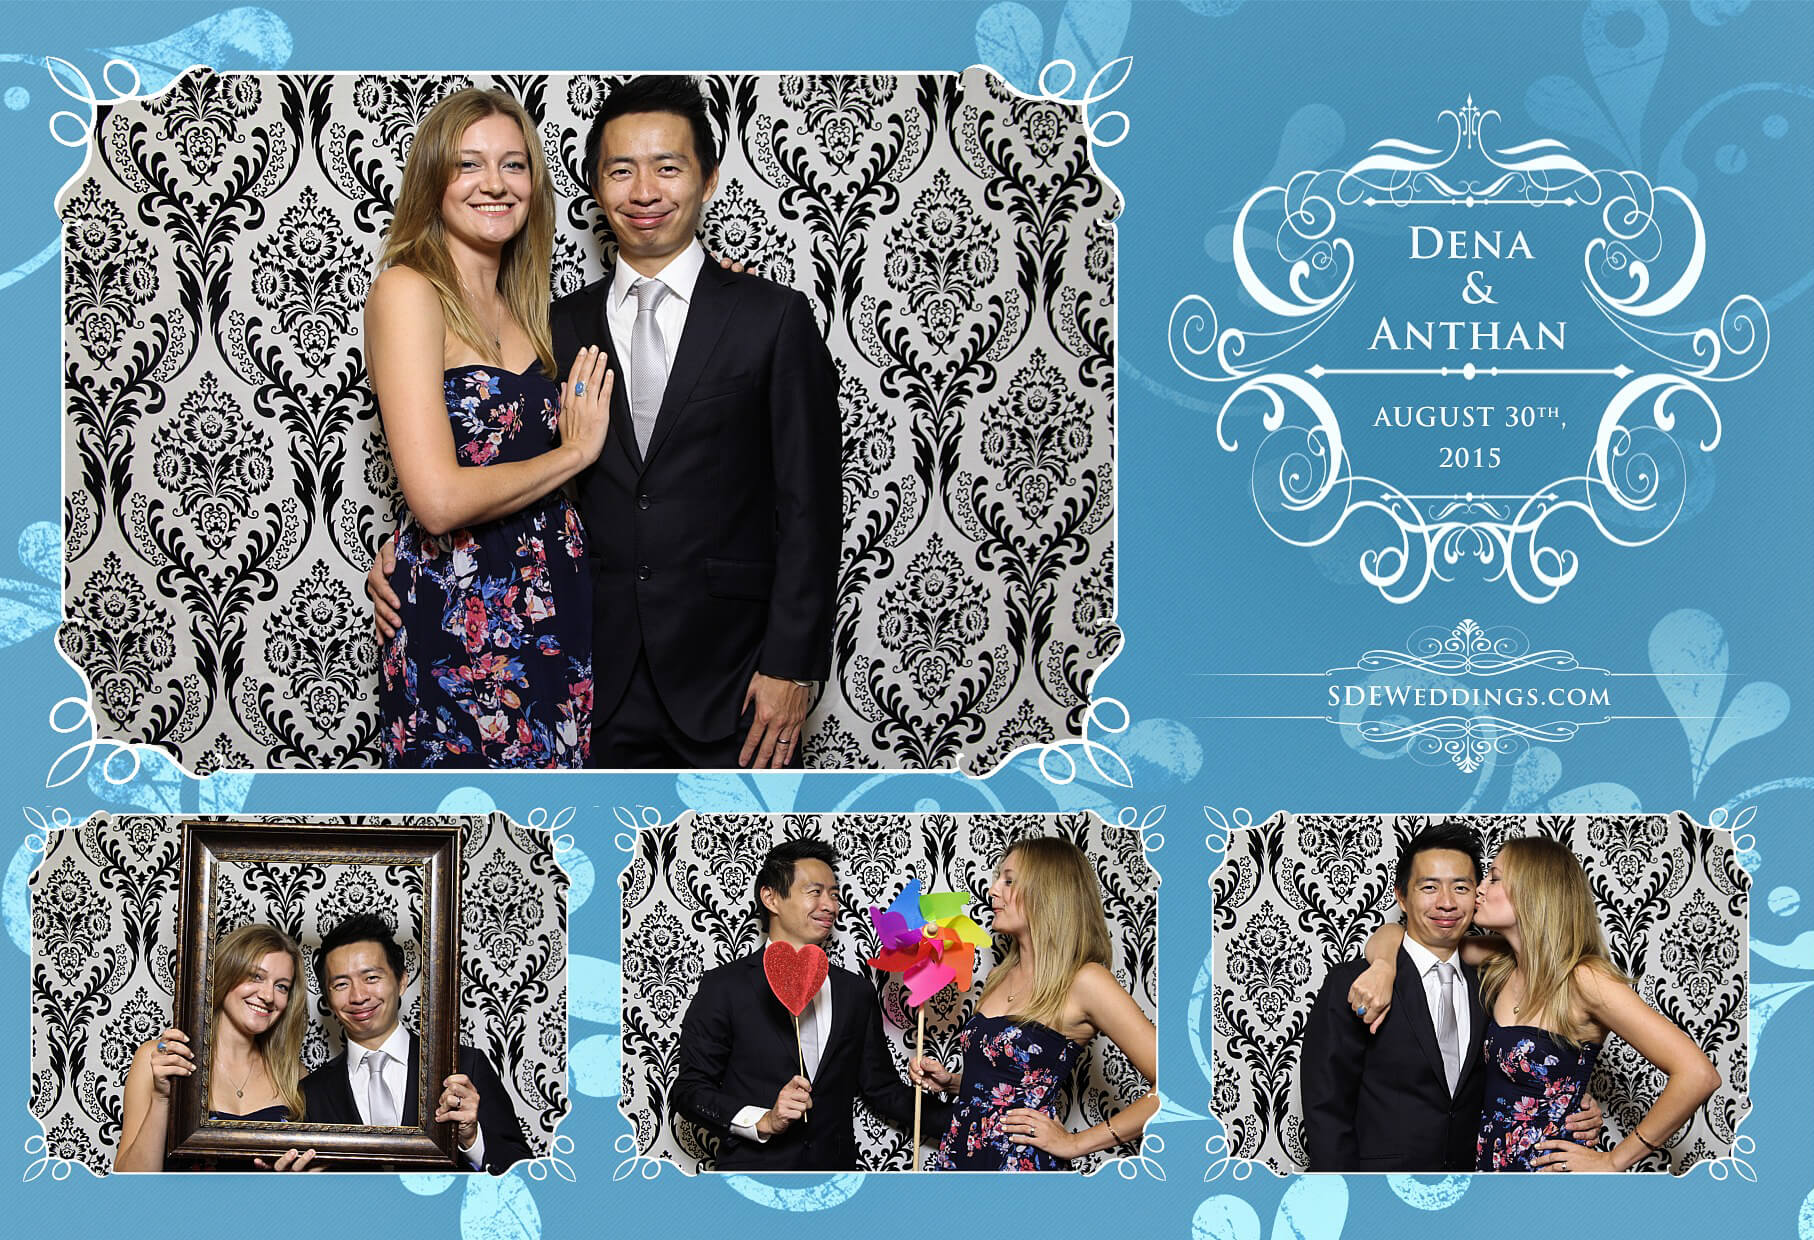 Toronto Photo Booth Rental at Peter and Paul Banquet Hall 2